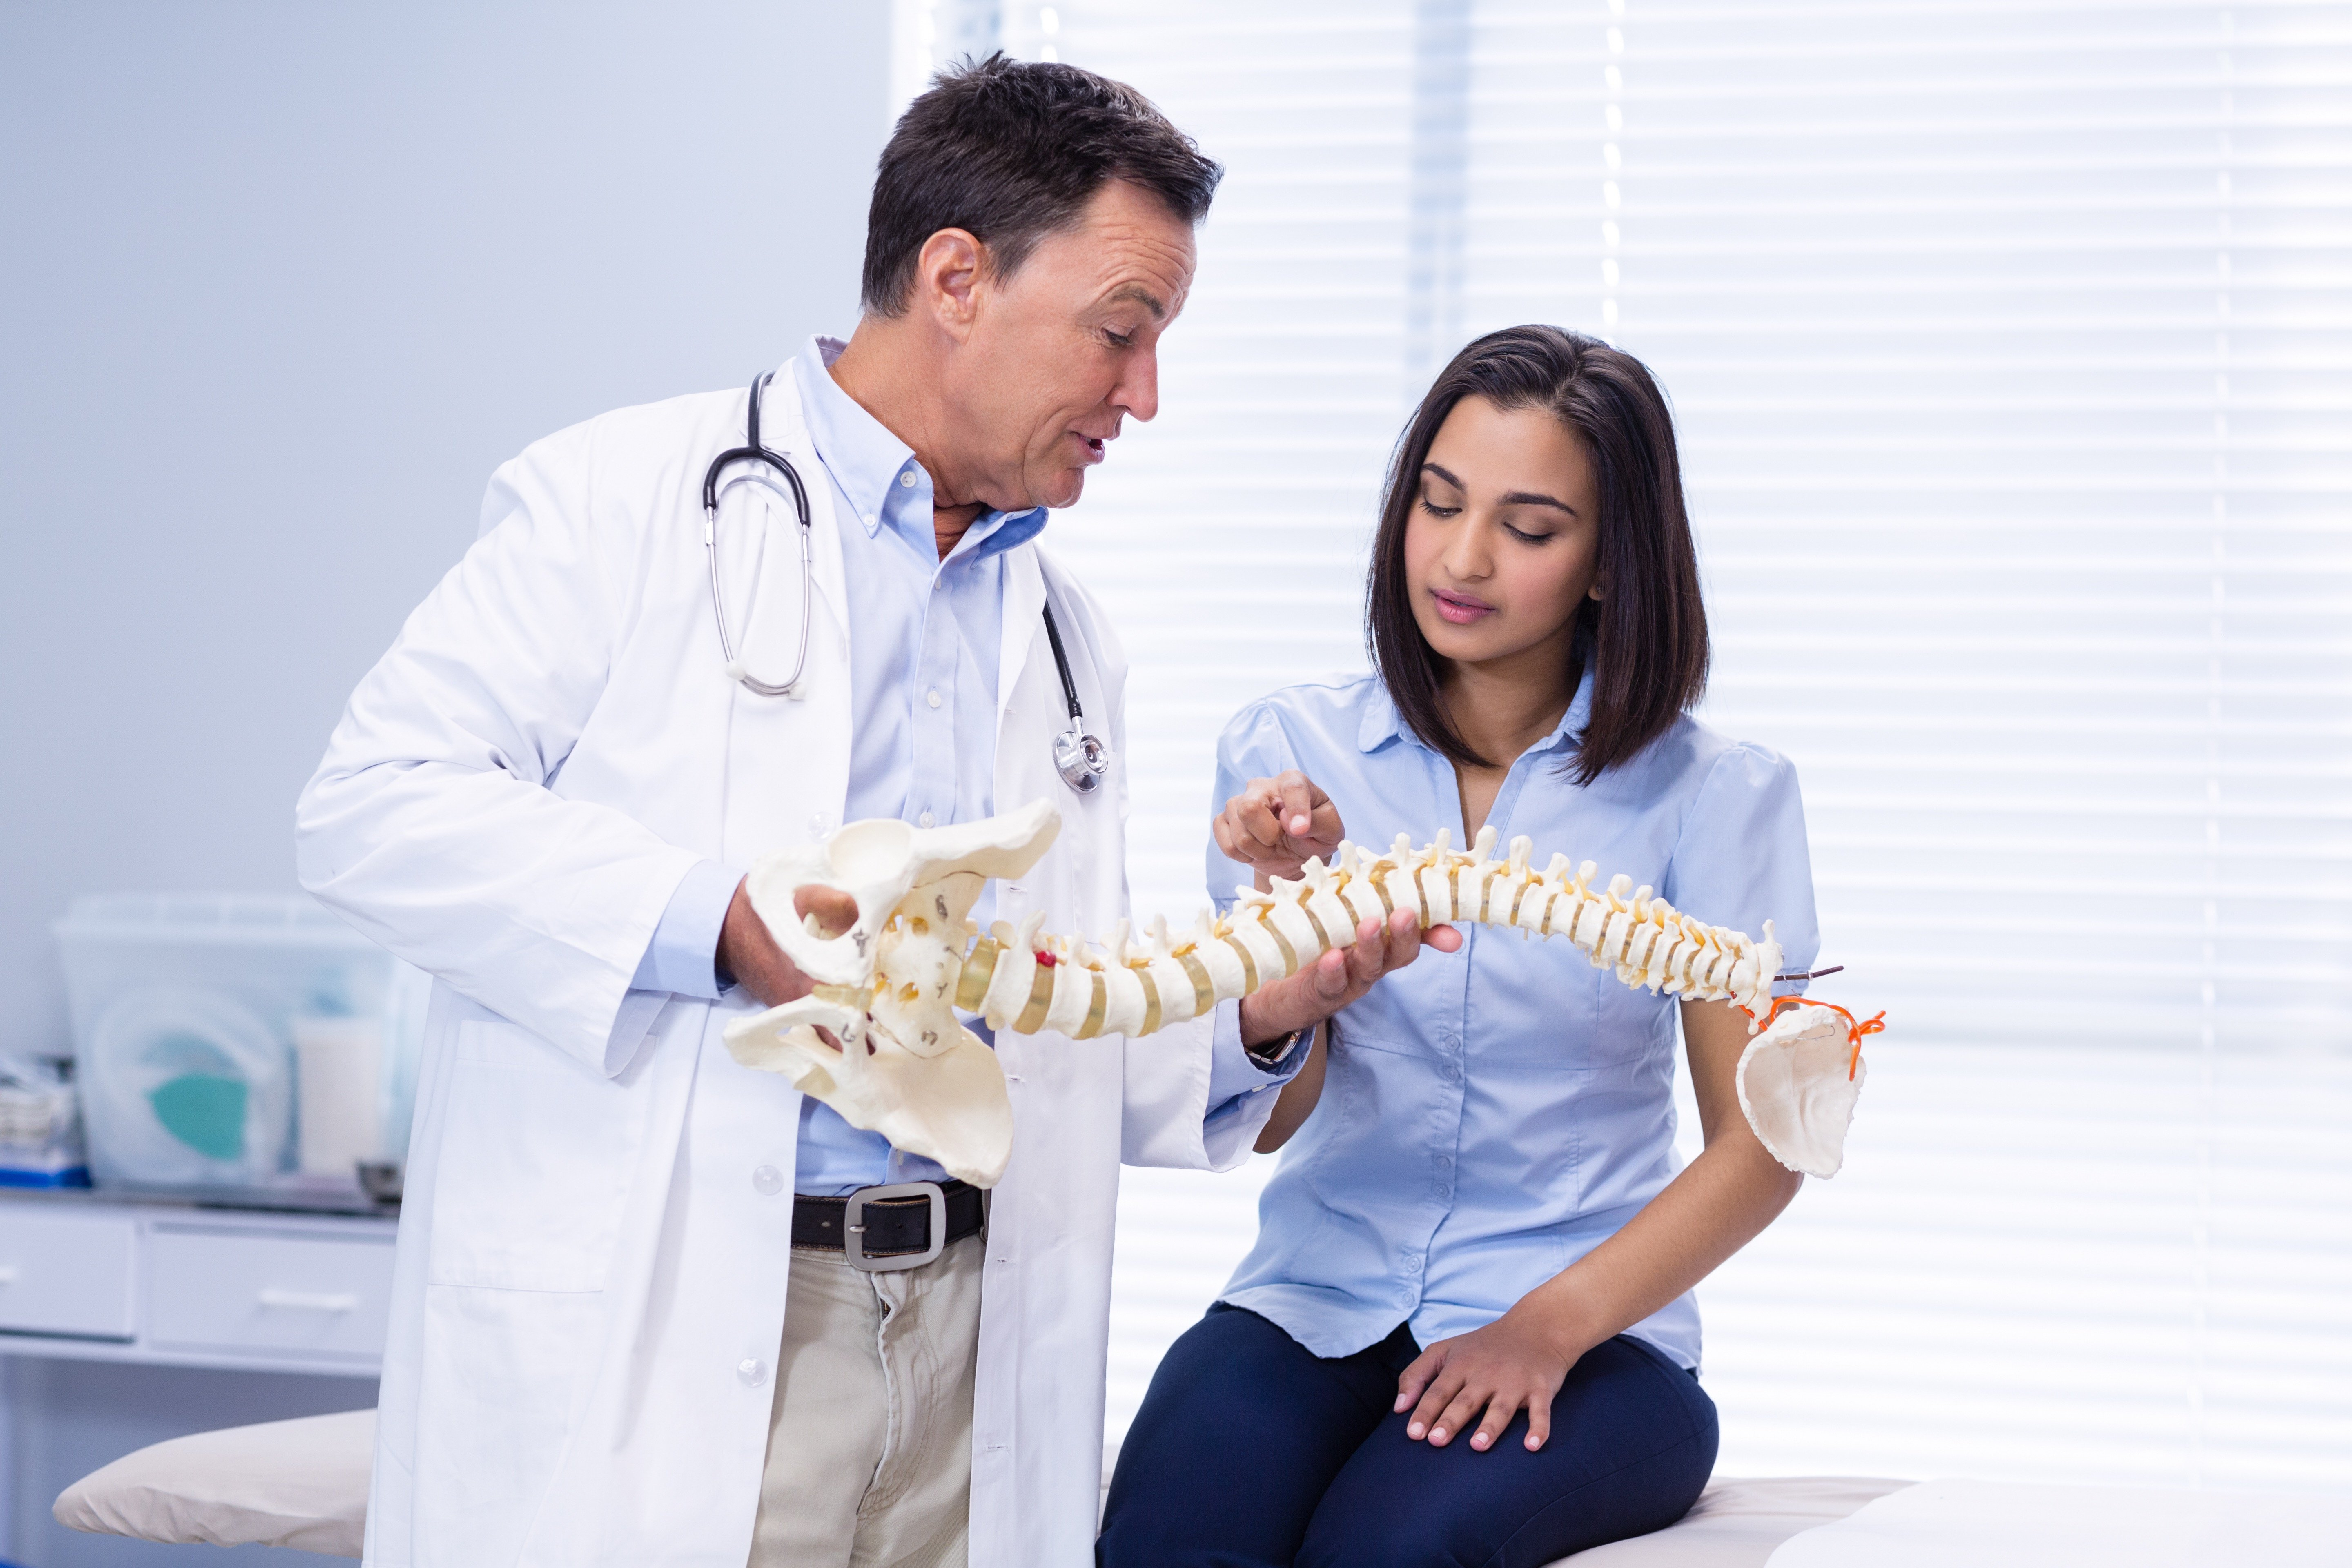 Does chiropractic care help your immune system?